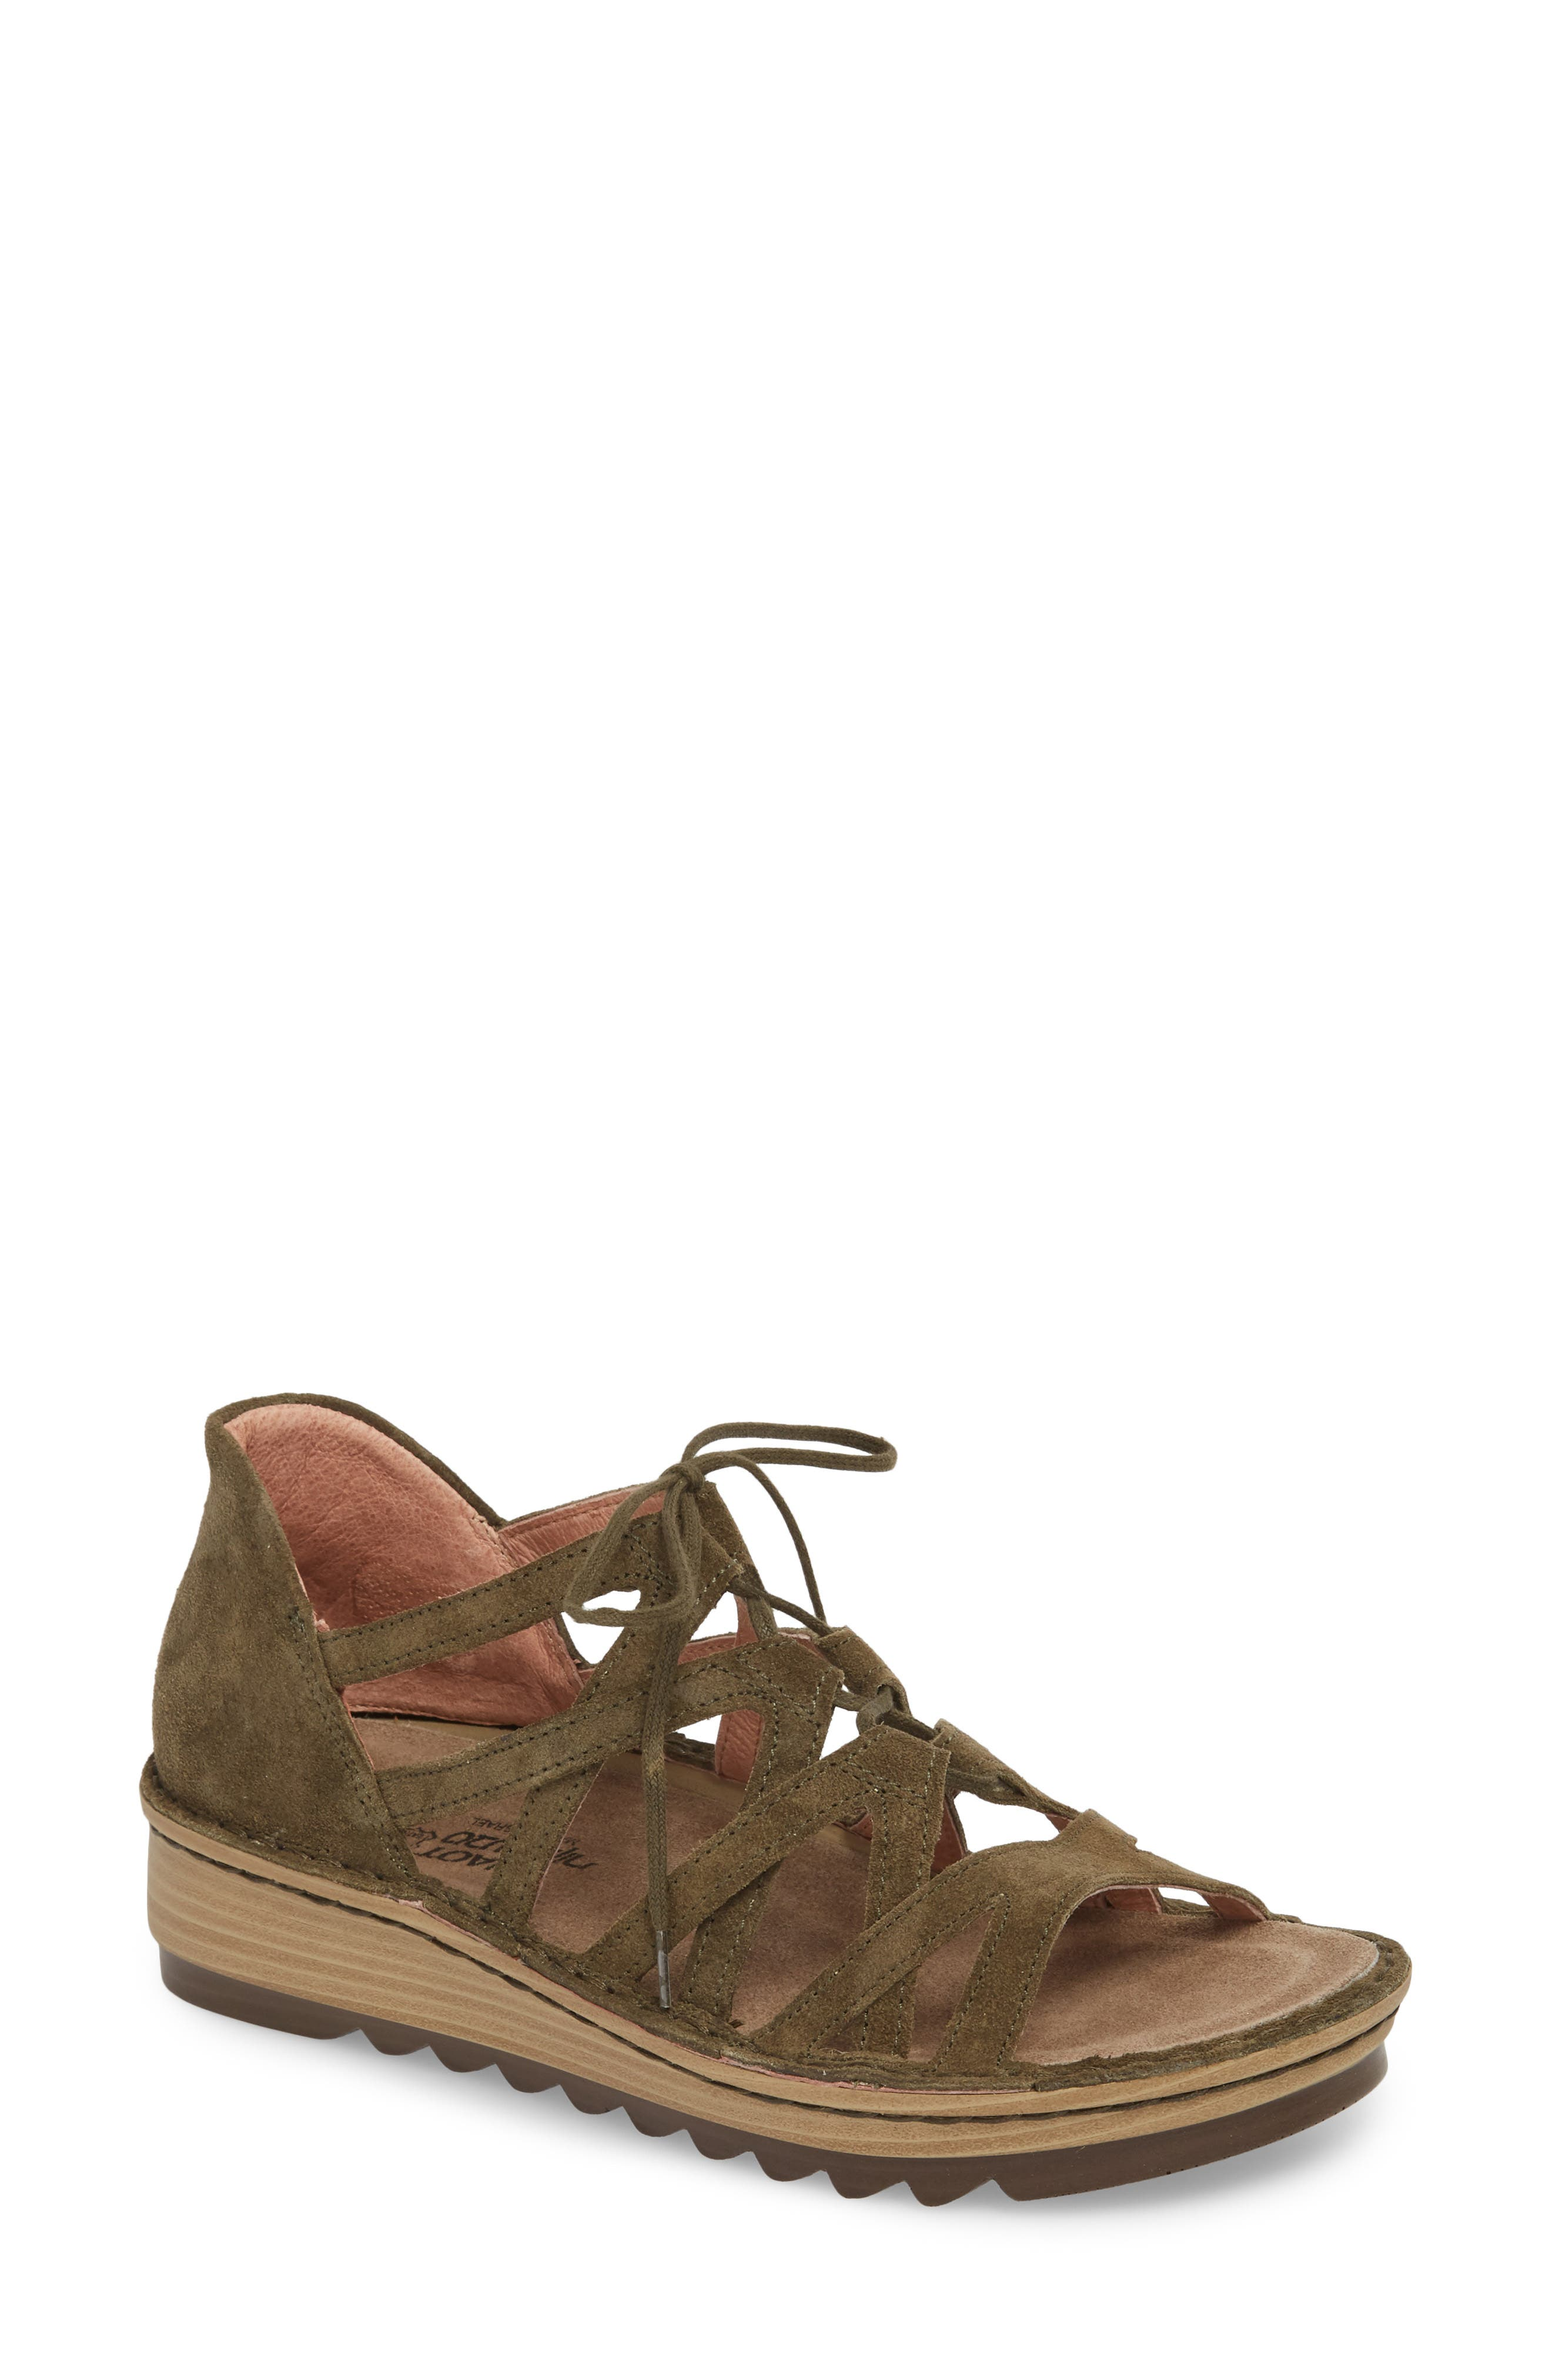 Yarrow Sandal,                             Main thumbnail 1, color,                             Oily Olive Suede